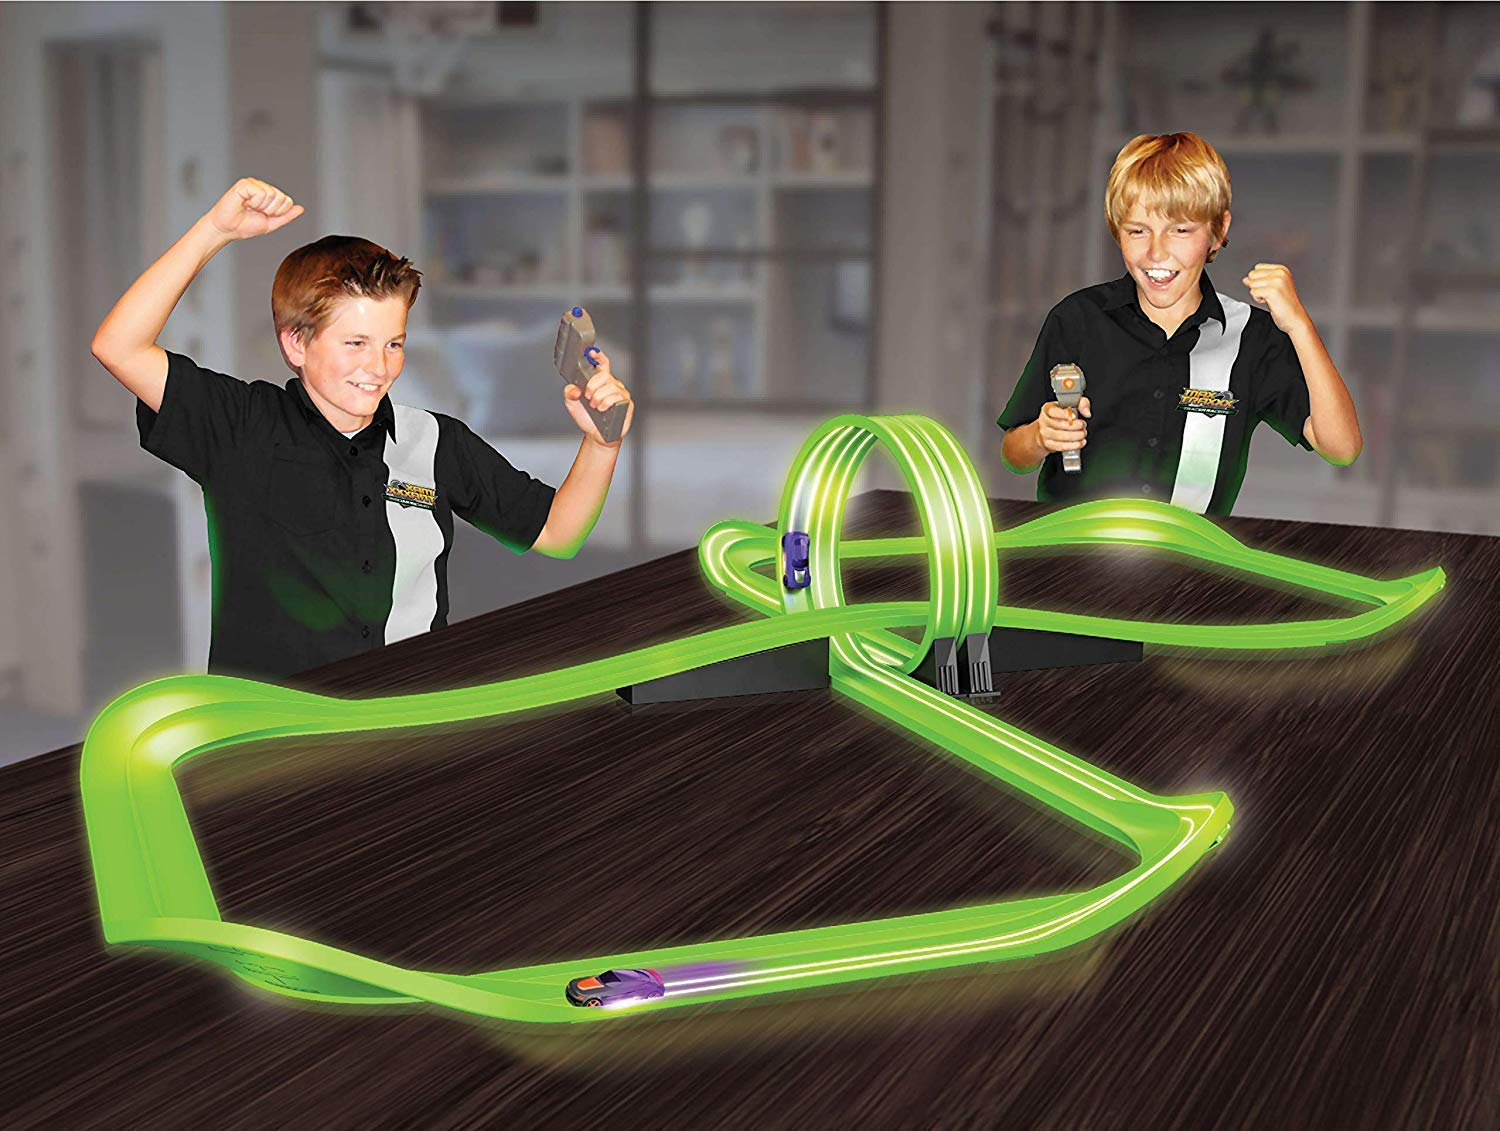 The Tracer Racers Remote Control Infinity Loop Set requires batteries.